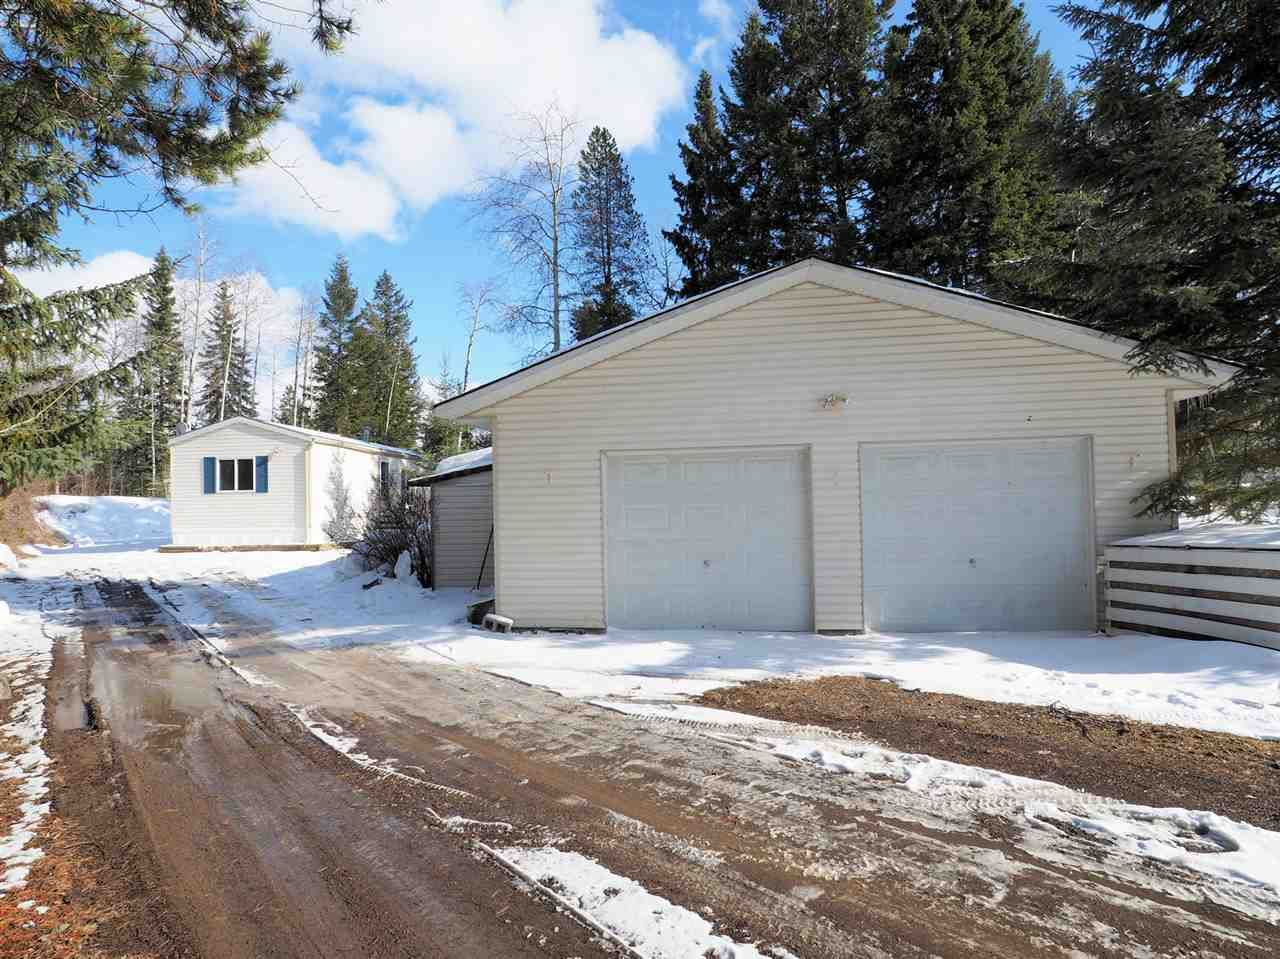 Main Photo: 6485 MERCER Road in 100 Mile House: 100 Mile House - Rural Manufactured Home for sale (100 Mile House (Zone 10))  : MLS®# R2559201